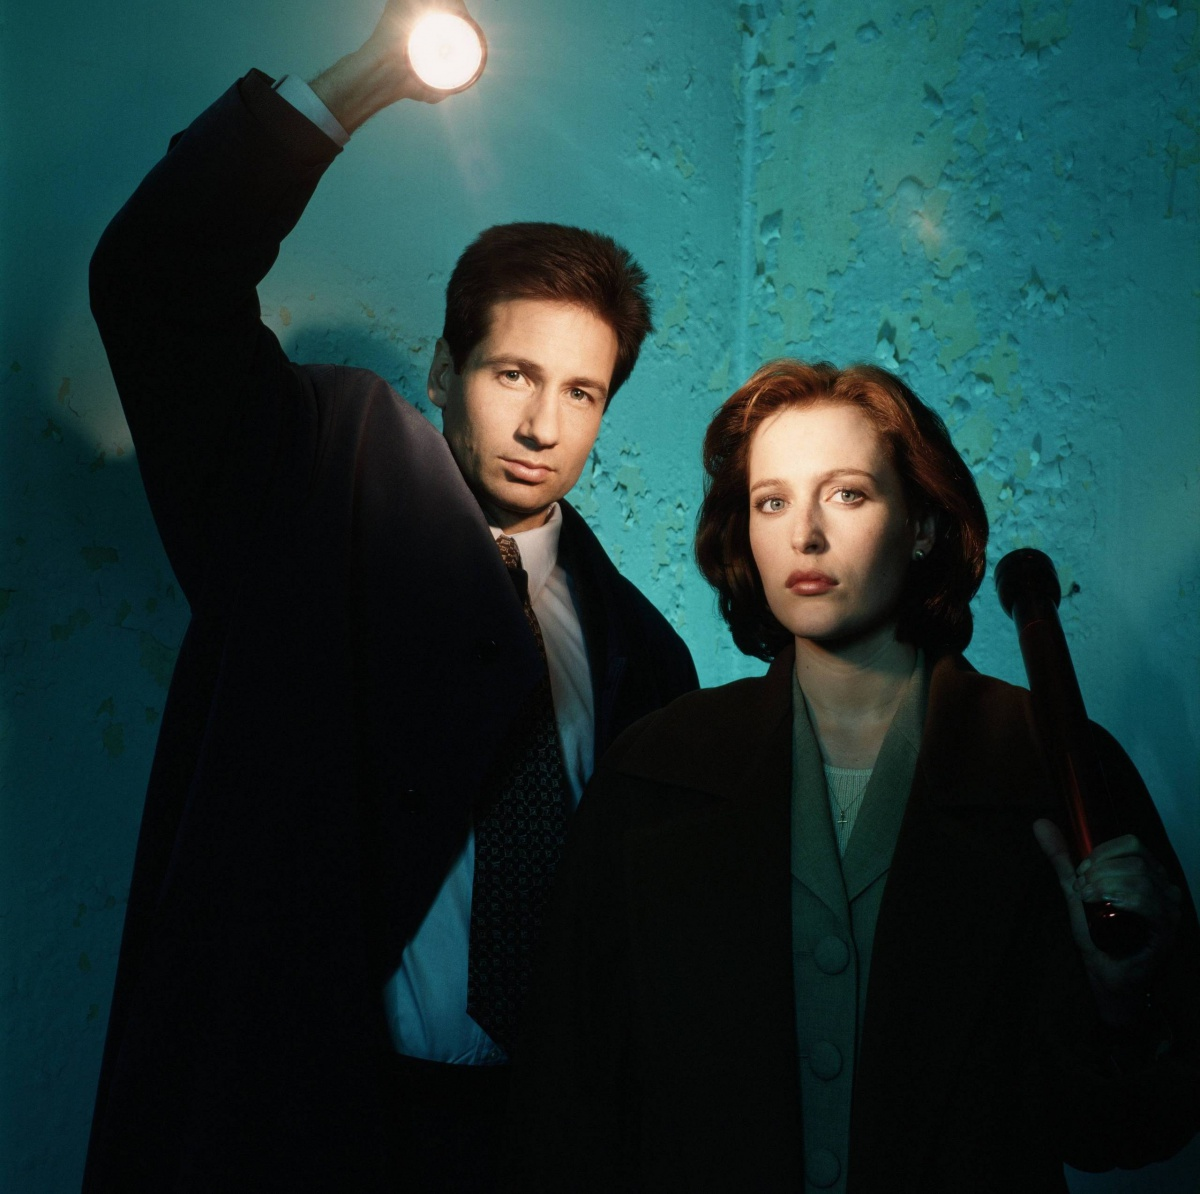 Voltage drop during heavy load-scully_mulder.jpg